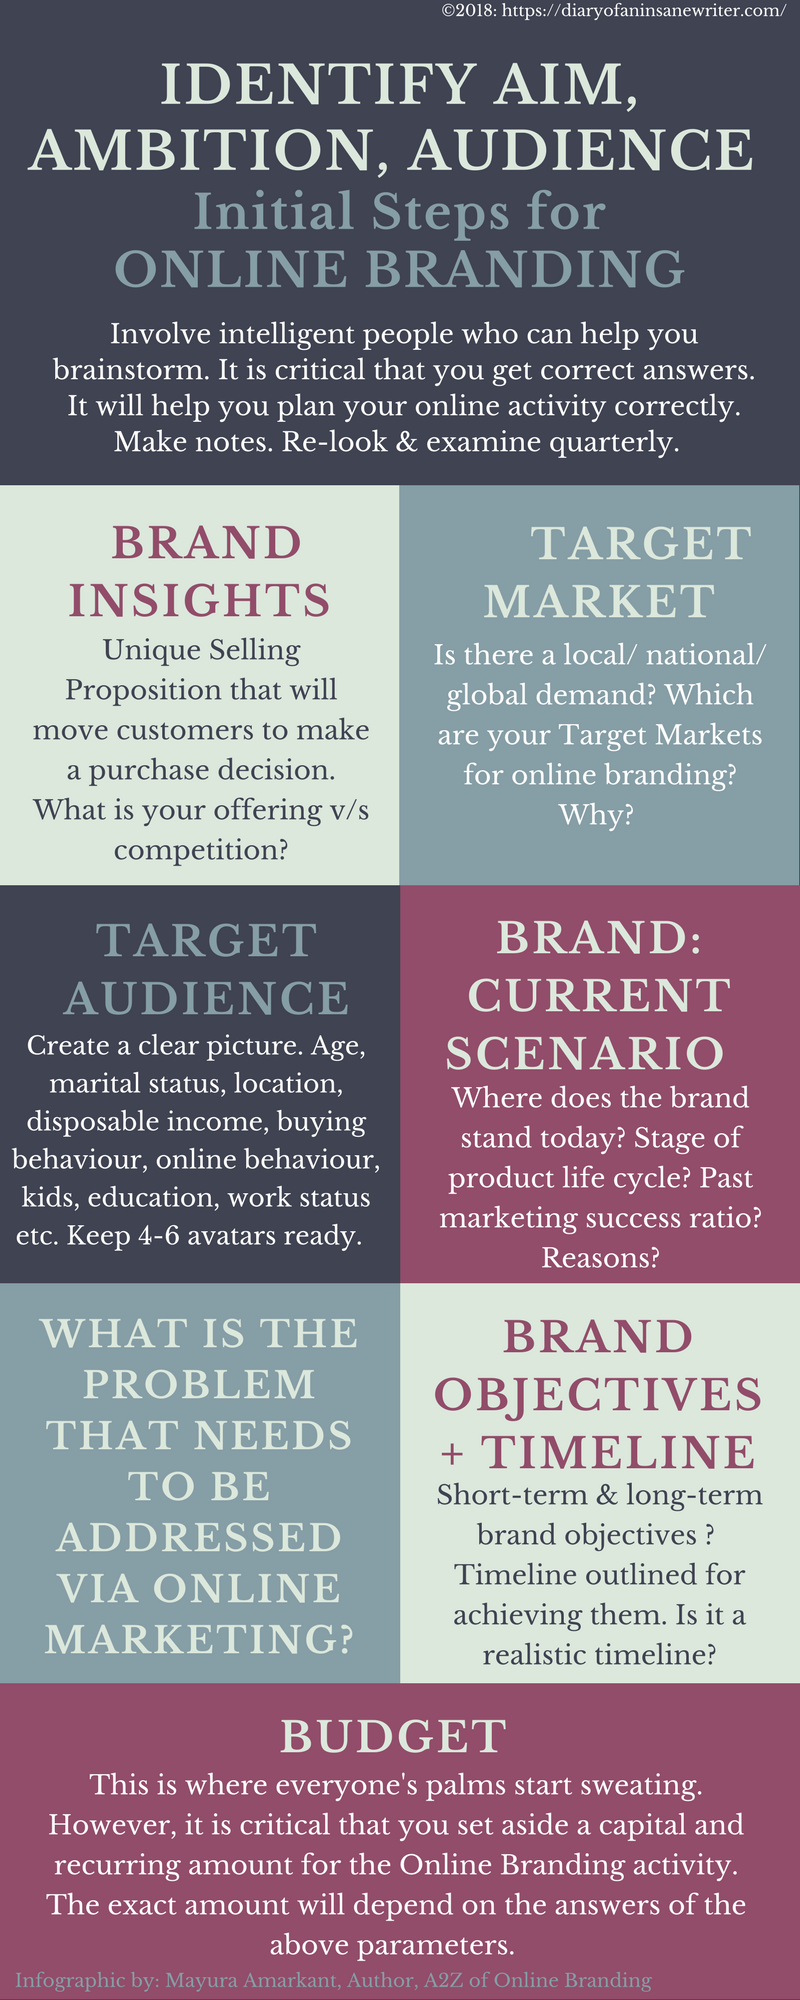 Infographic on Audience Aim and Ambition for Online Branding